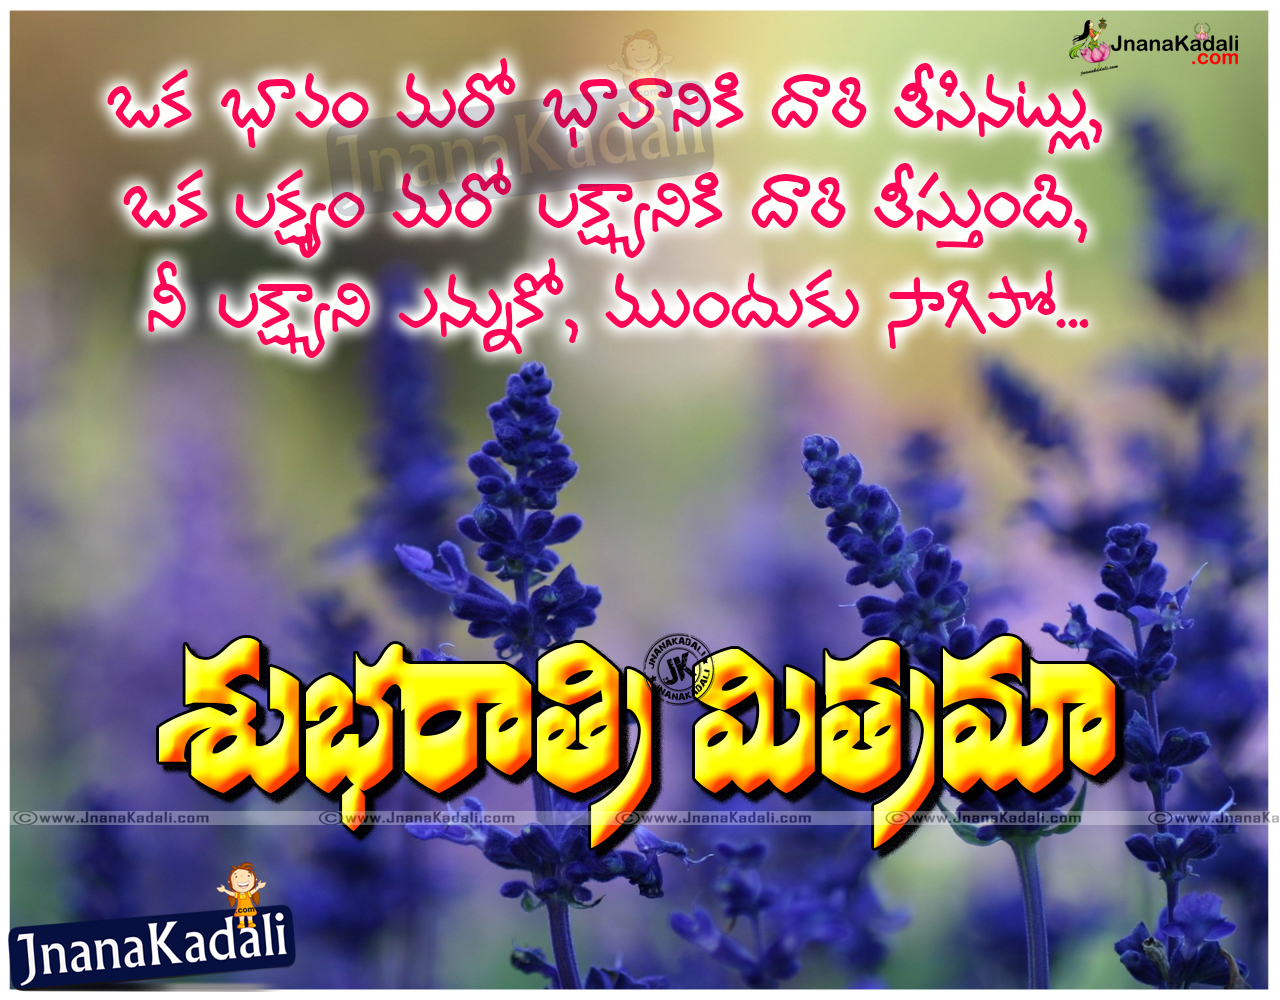 subharatri images and wishes in telugu with pictures